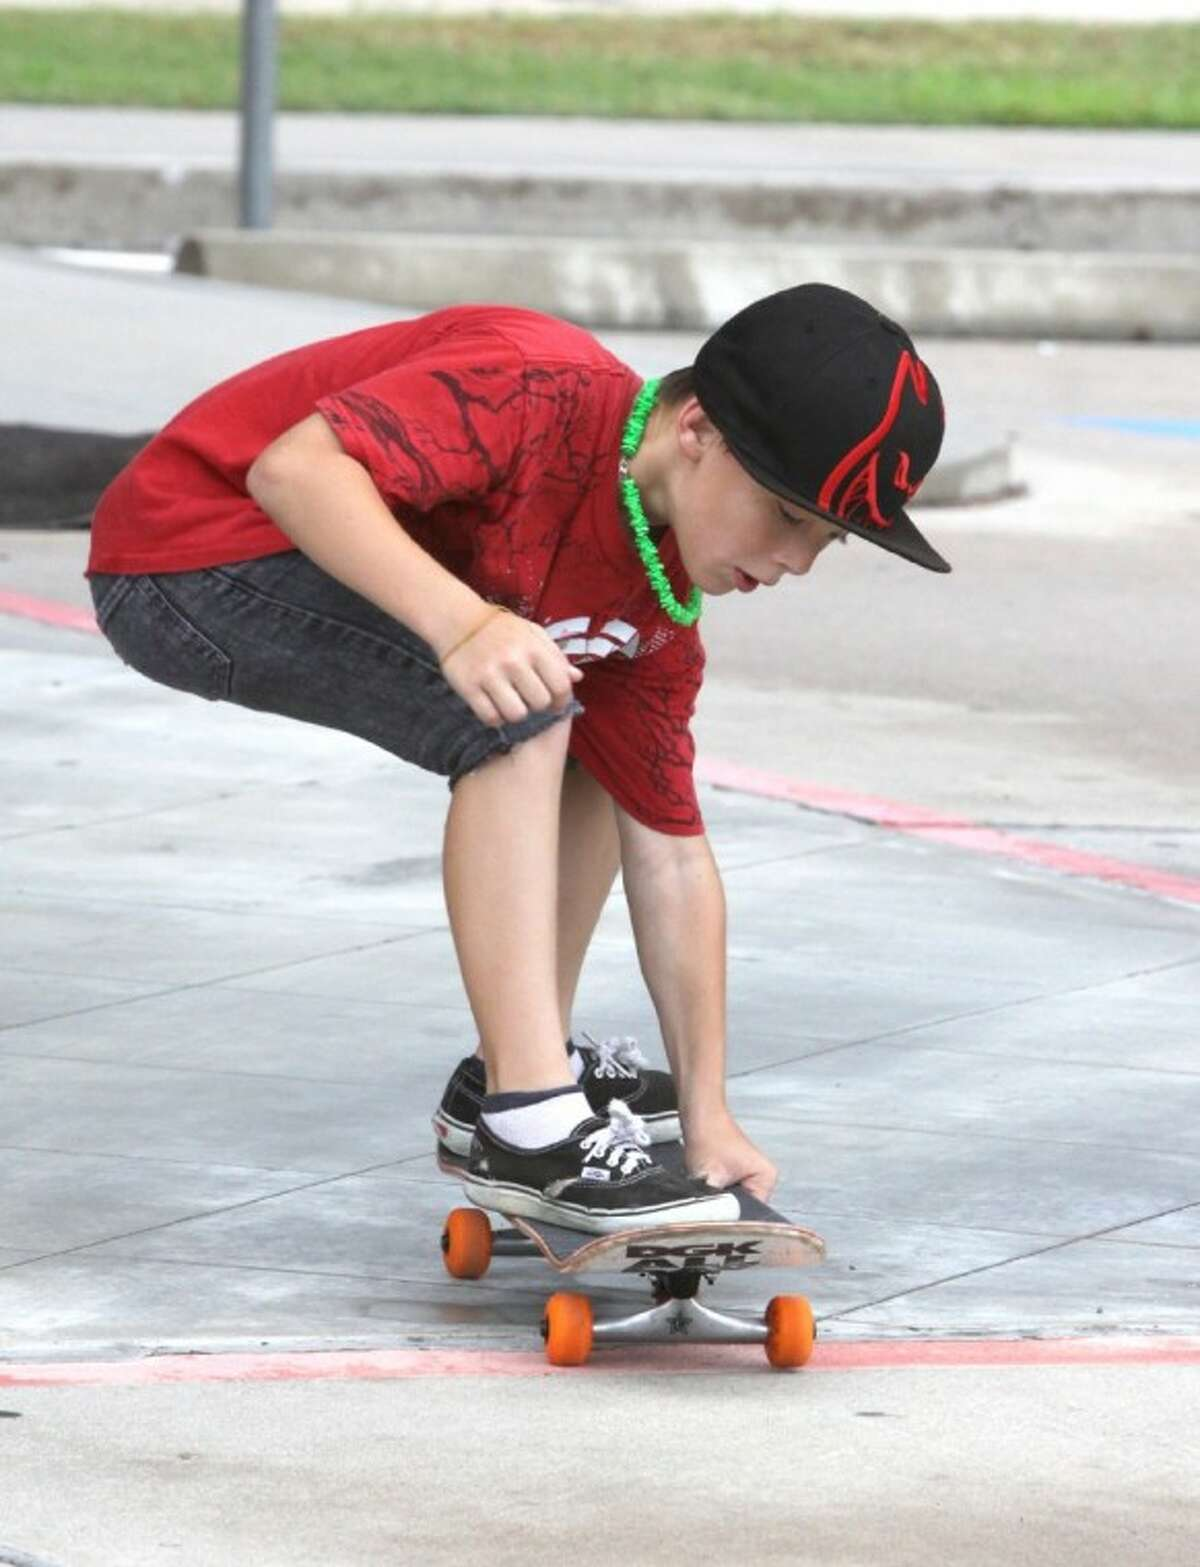 Ian Hocutt 8, skates with the TruthRiders.